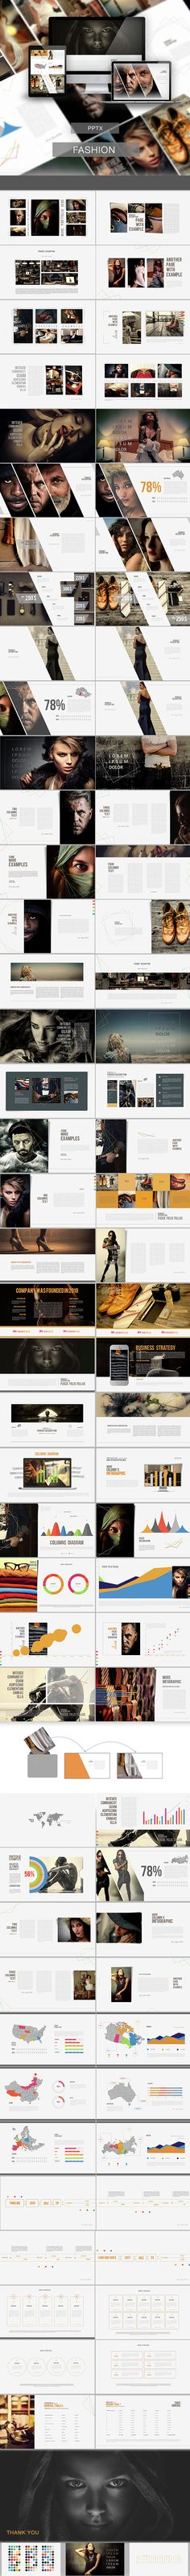 Victa Powerpoint Presentation  Presentation Layout Layout And